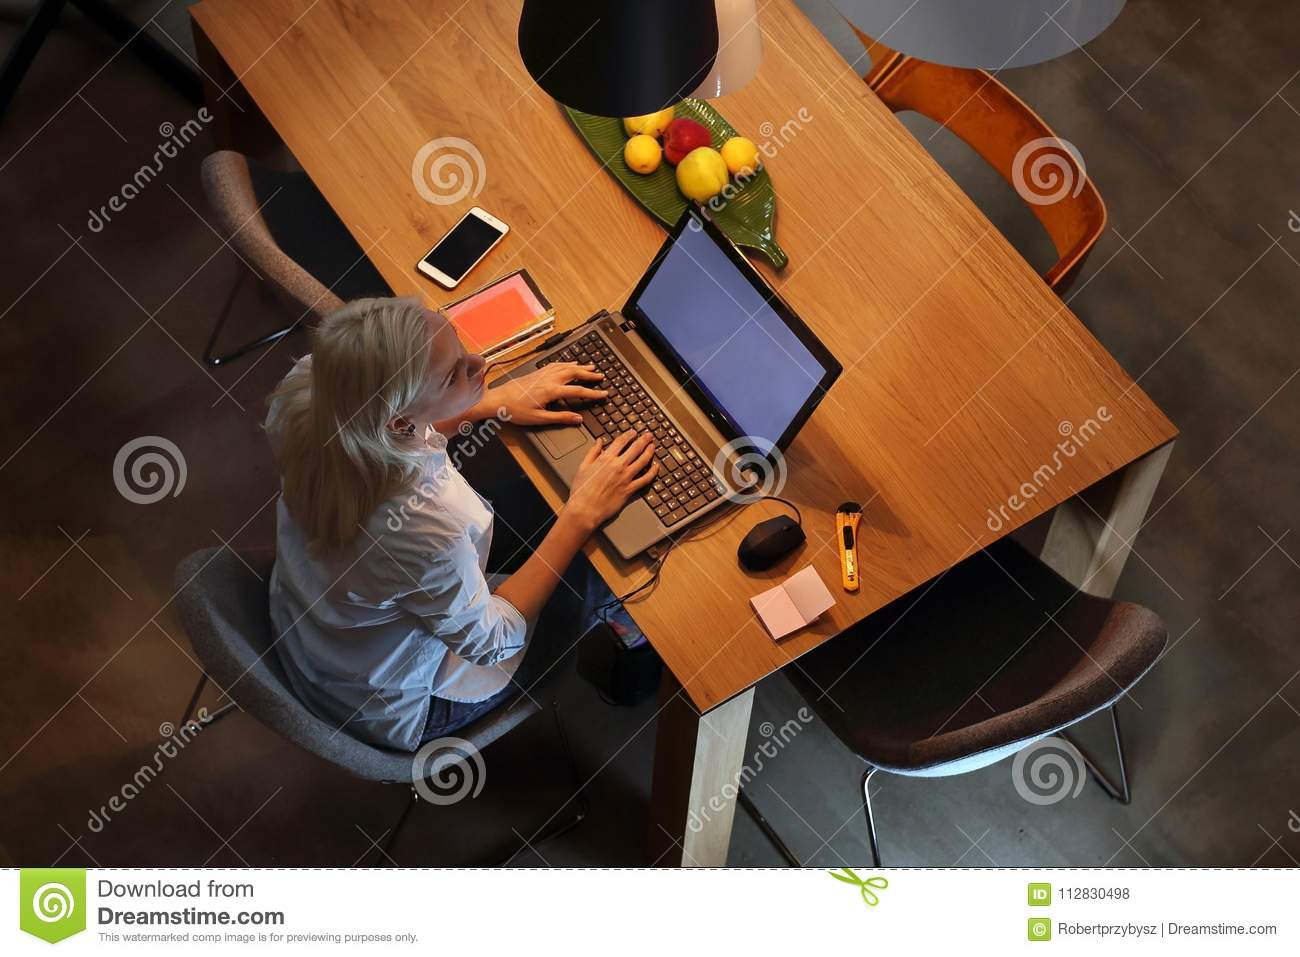 Remote Work On The Computer. Stock Photo - Image of ...